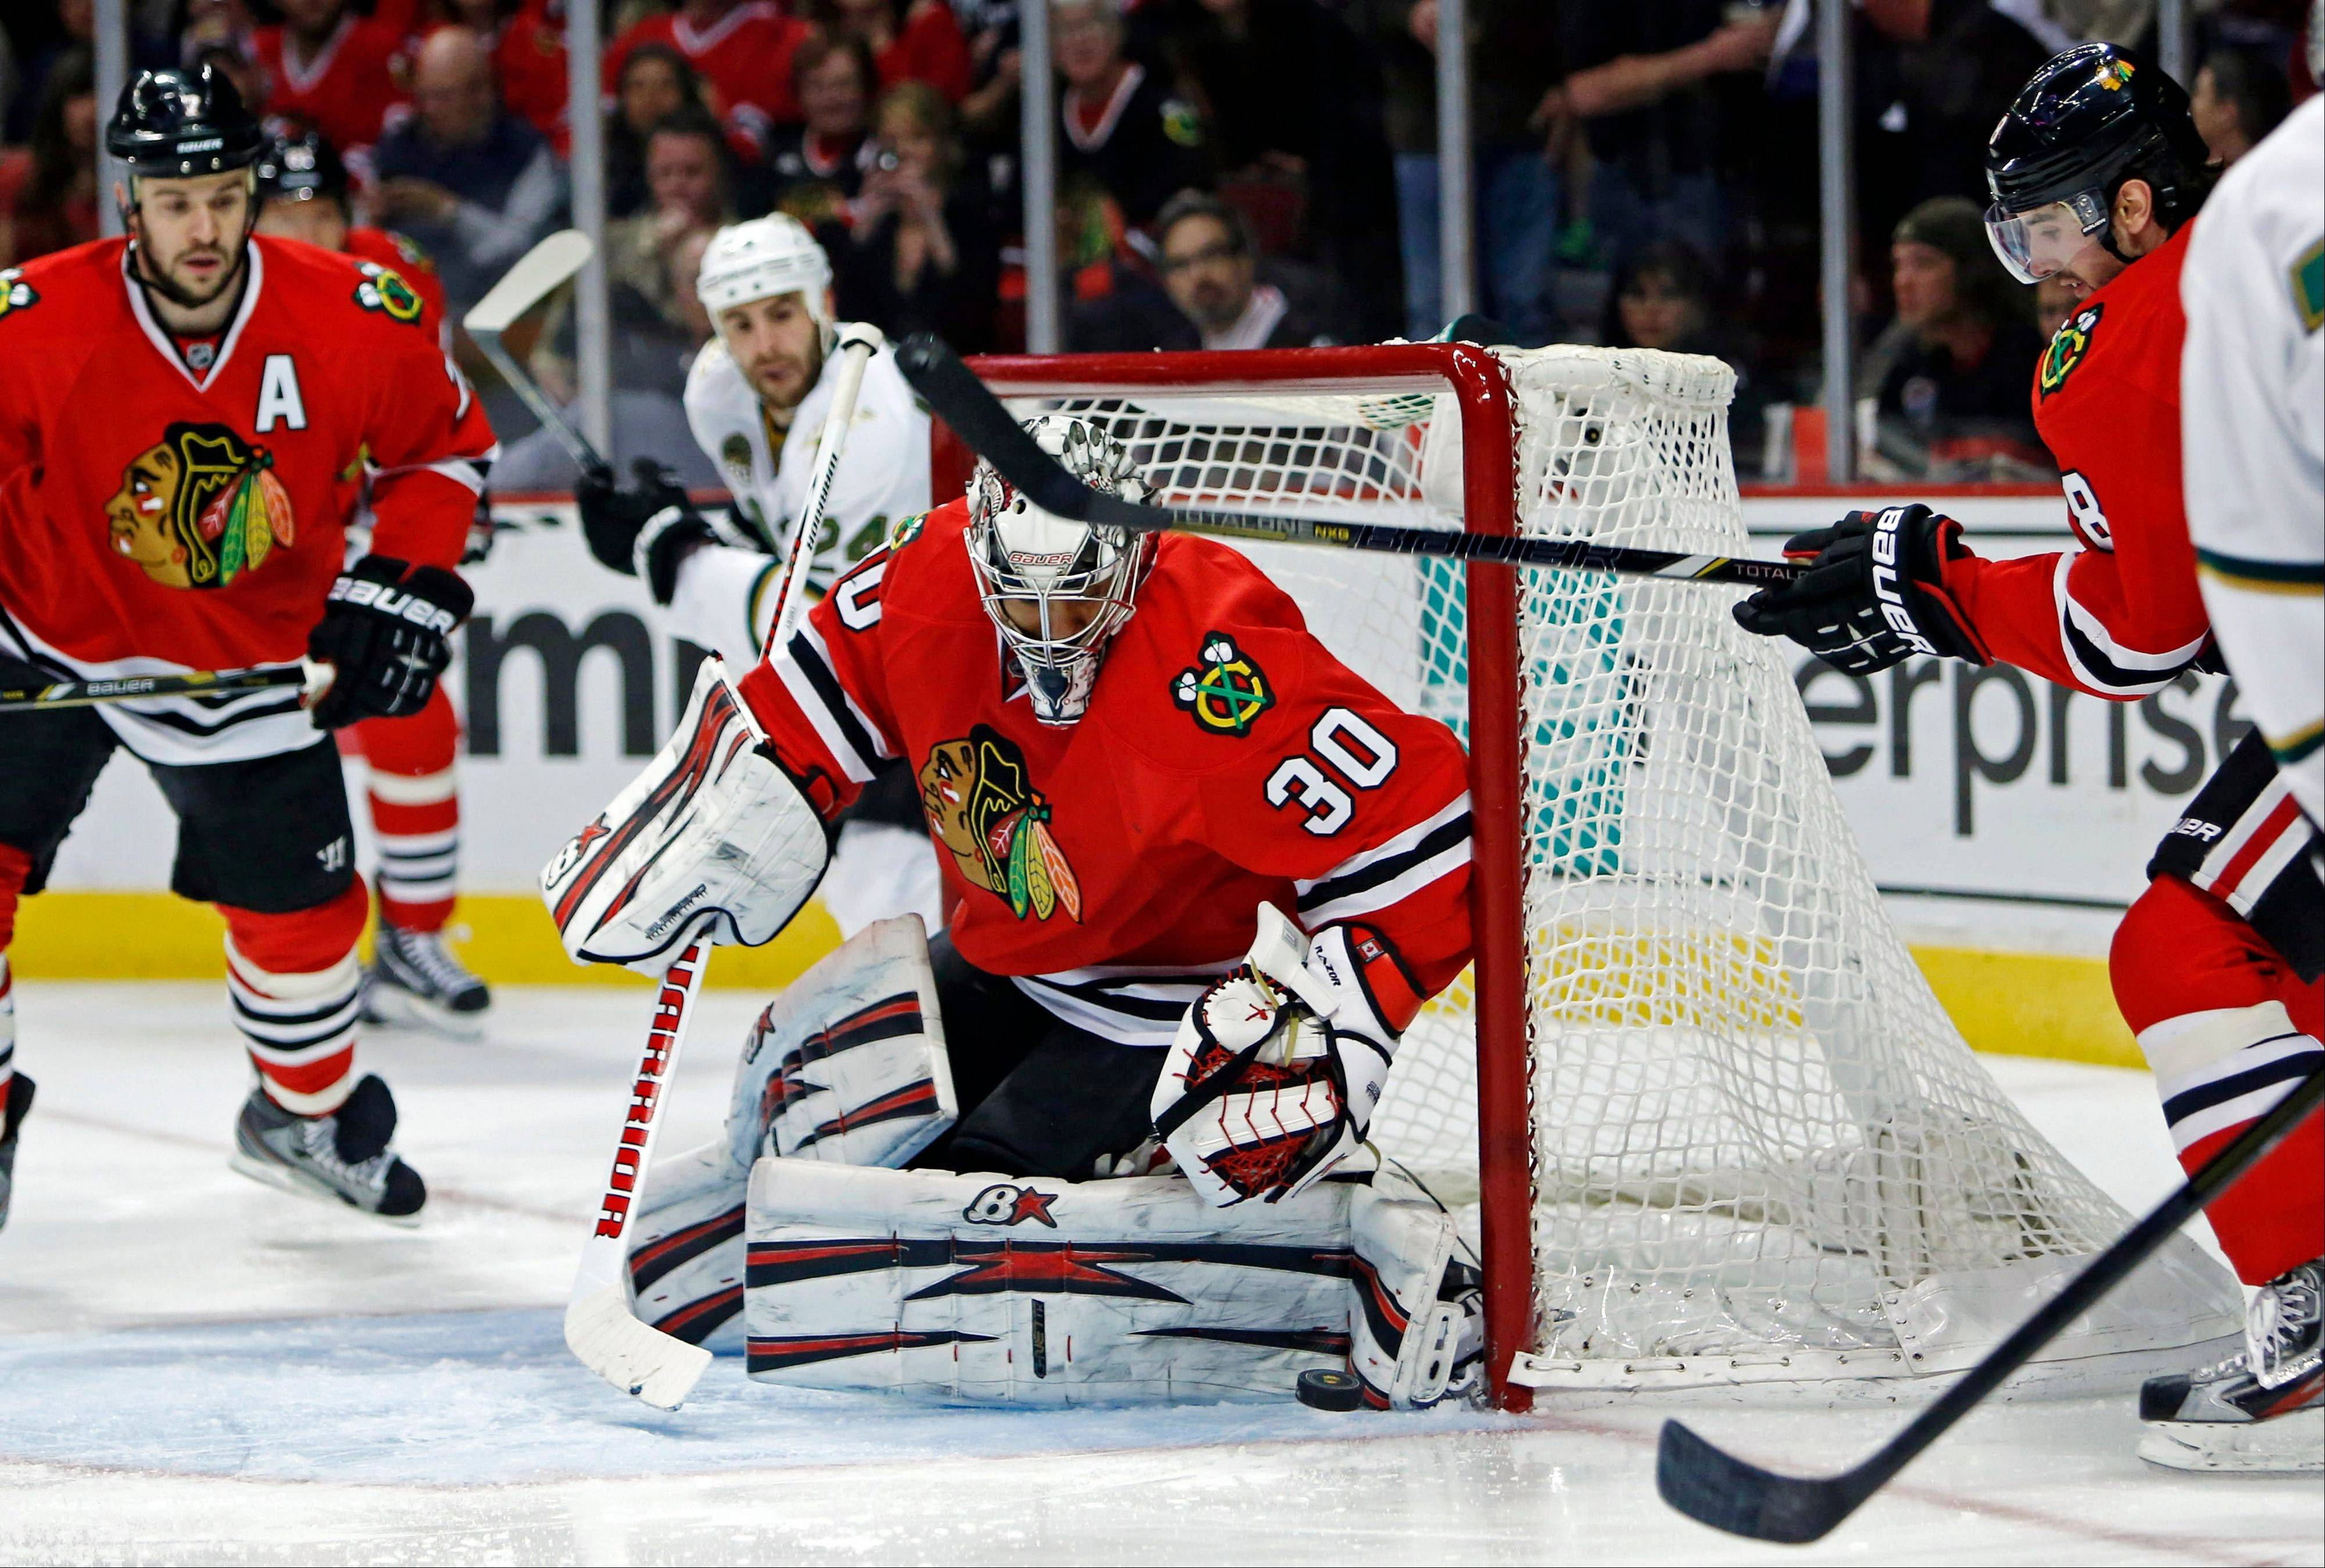 Blackhawks goalie Ray Emery makes a save during the first period against the Dallas Stars in an NHL hockey game in Chicago Monday.